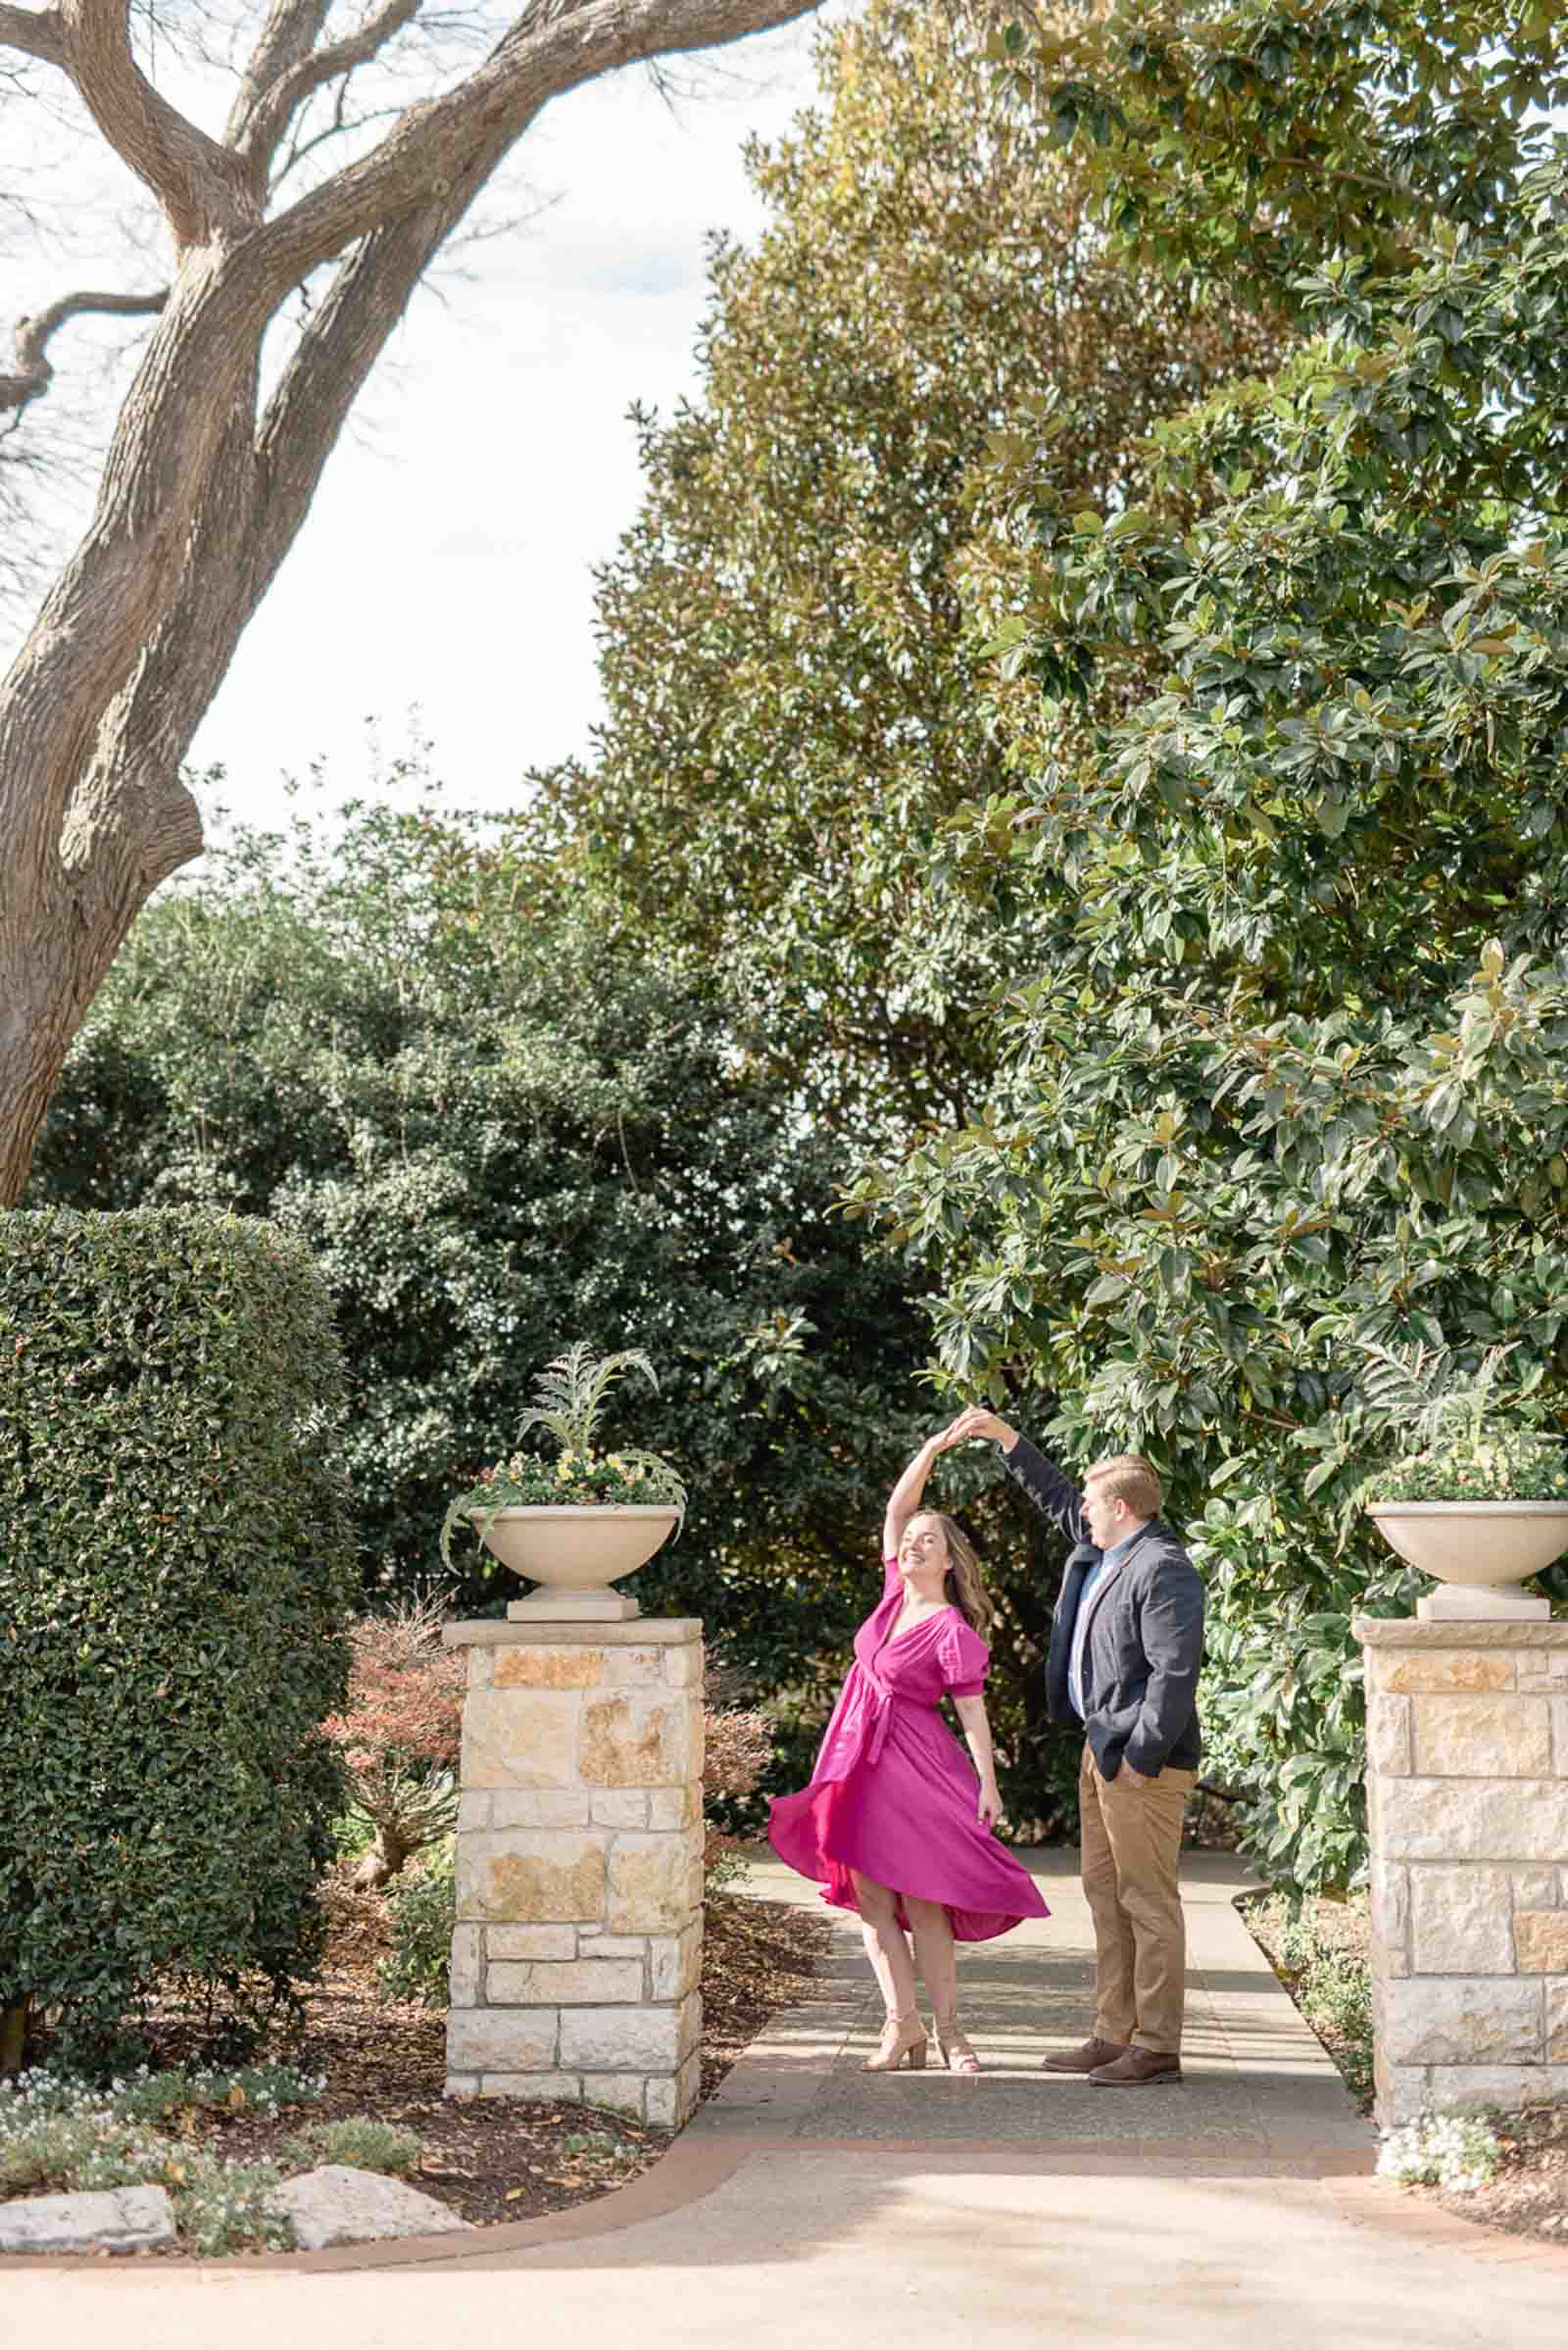 Dallas Arboretum Engagement-JenSymes-76-2.jpg